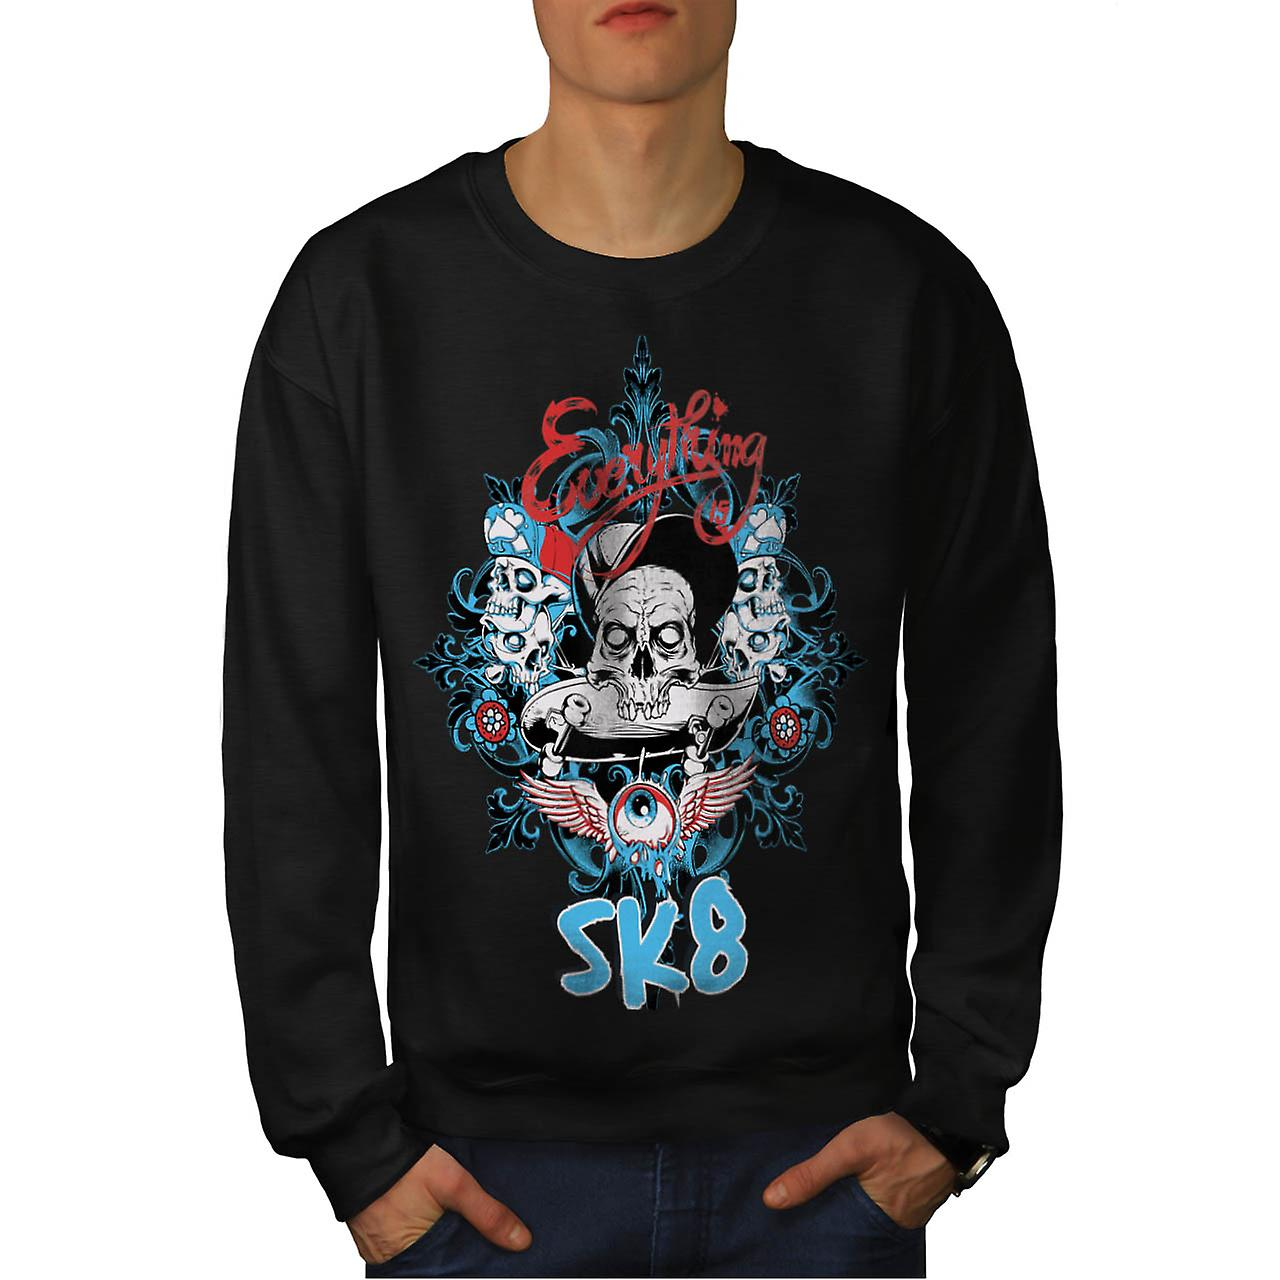 Skate Board Gangster Skull Ride Men Black Sweatshirt | Wellcoda